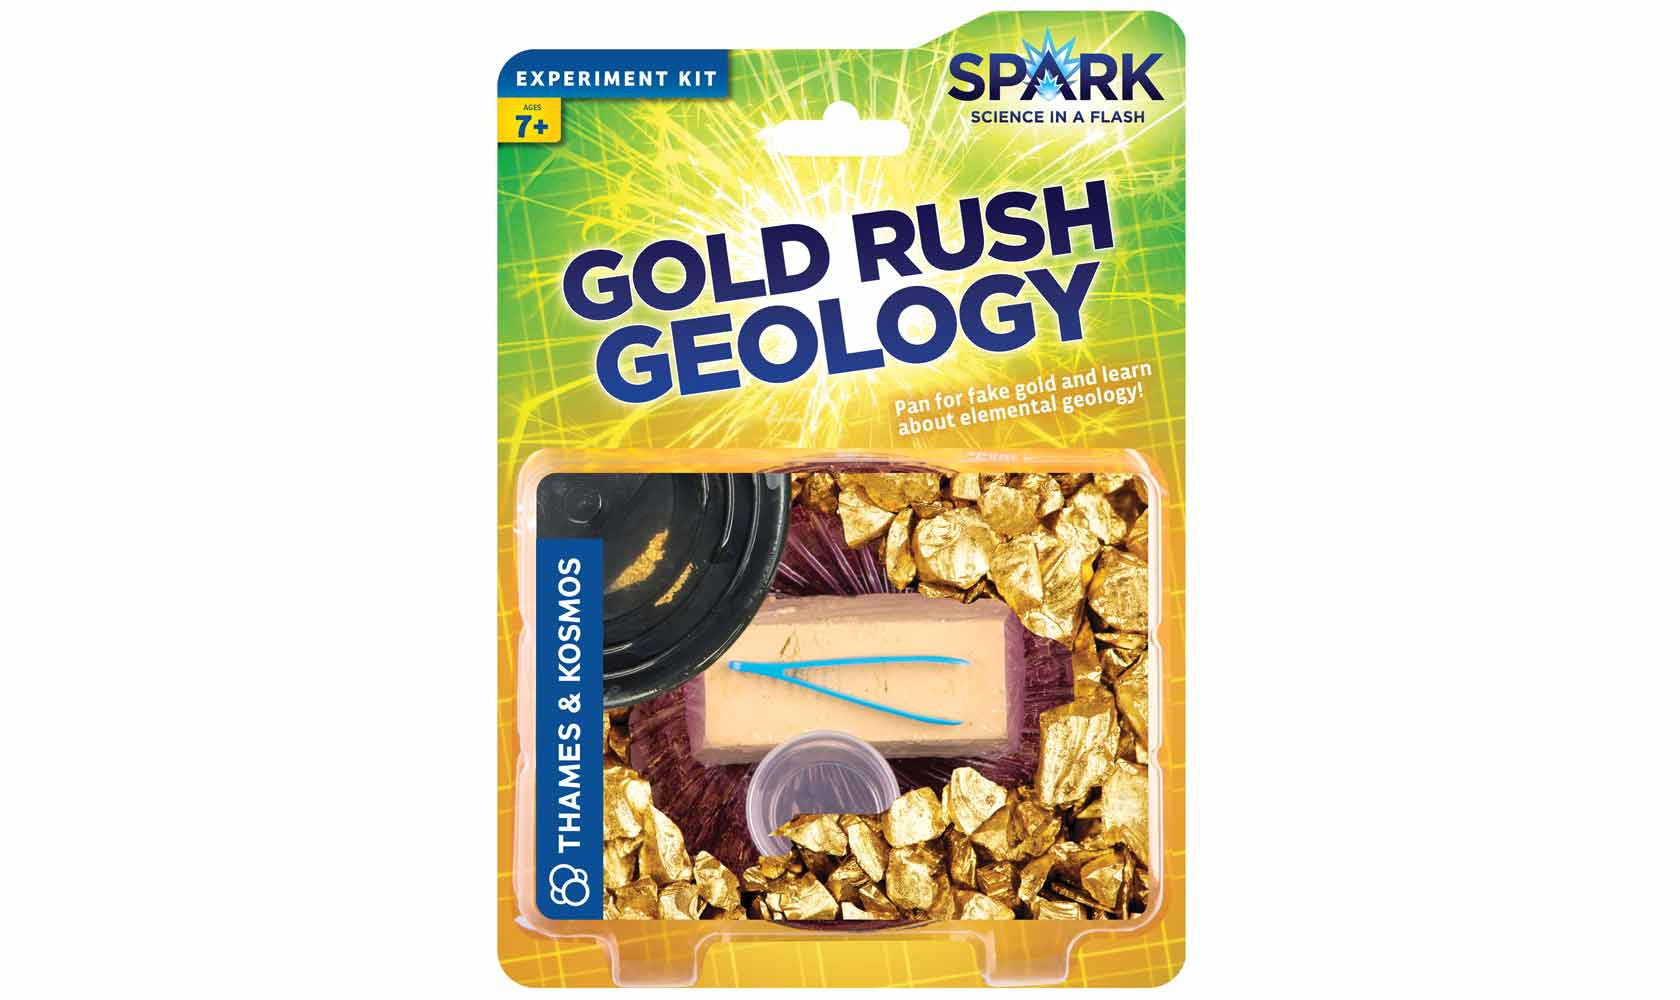 THAMES AND KOSMOS Gold Rush Geology